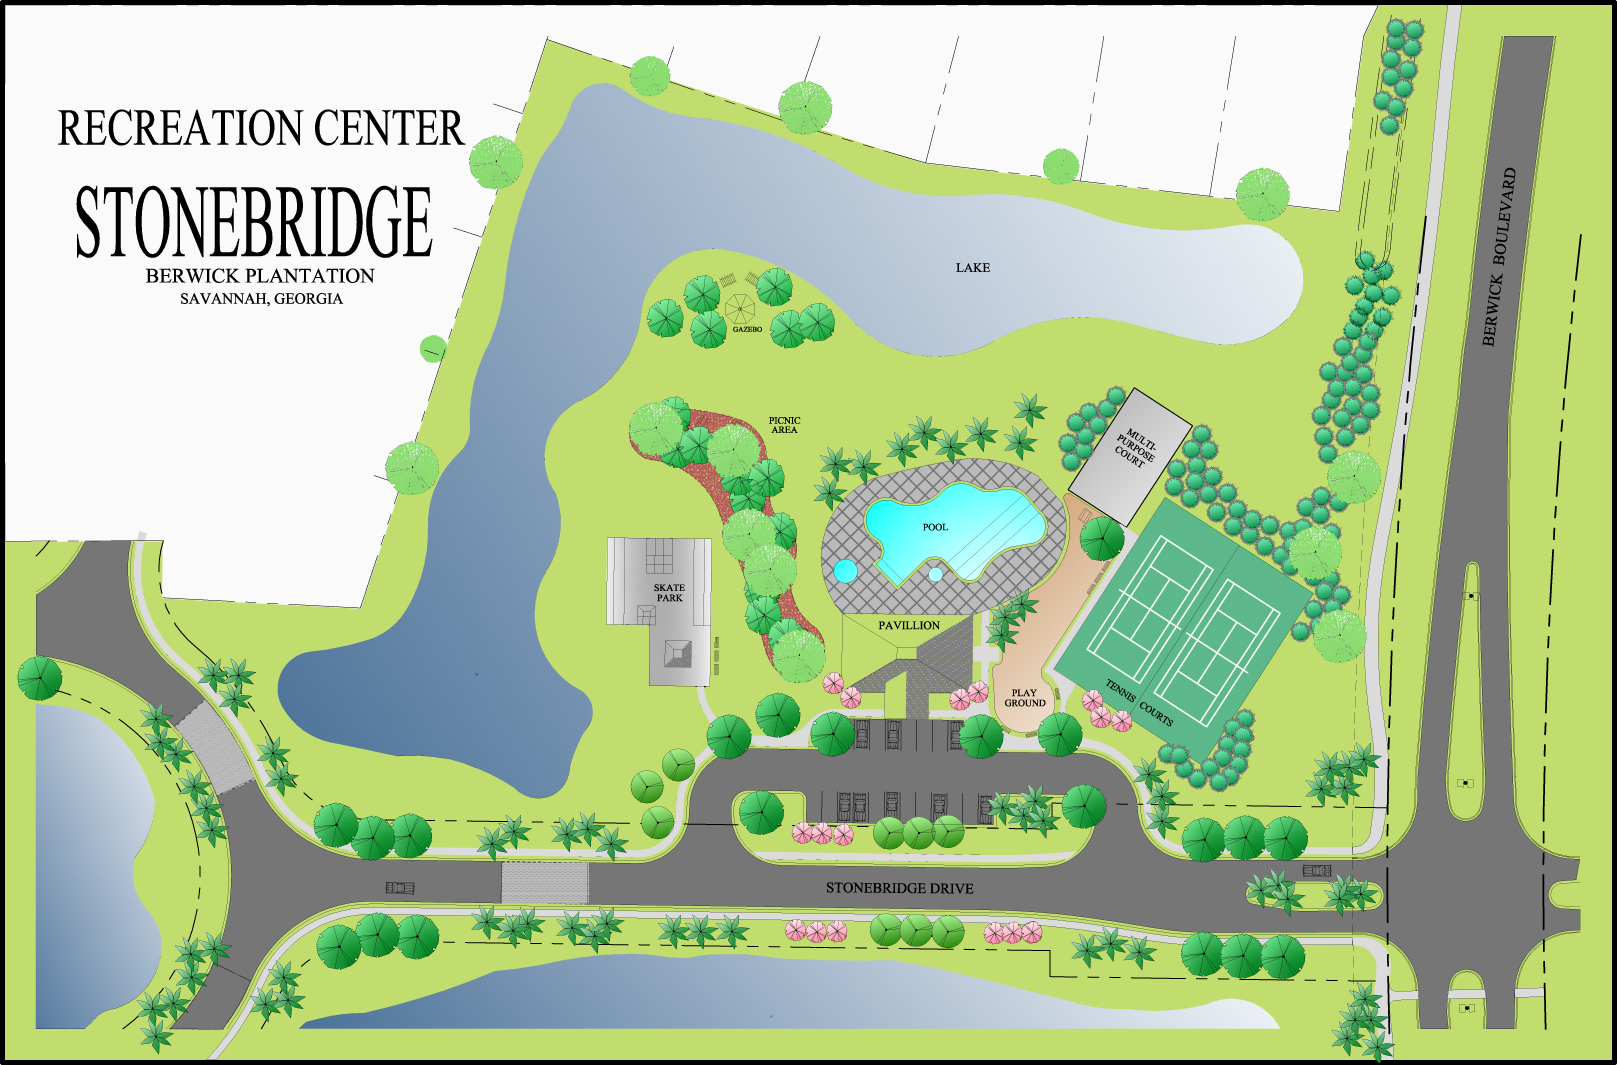 Stonebridge Recreation Center Marketing Tool